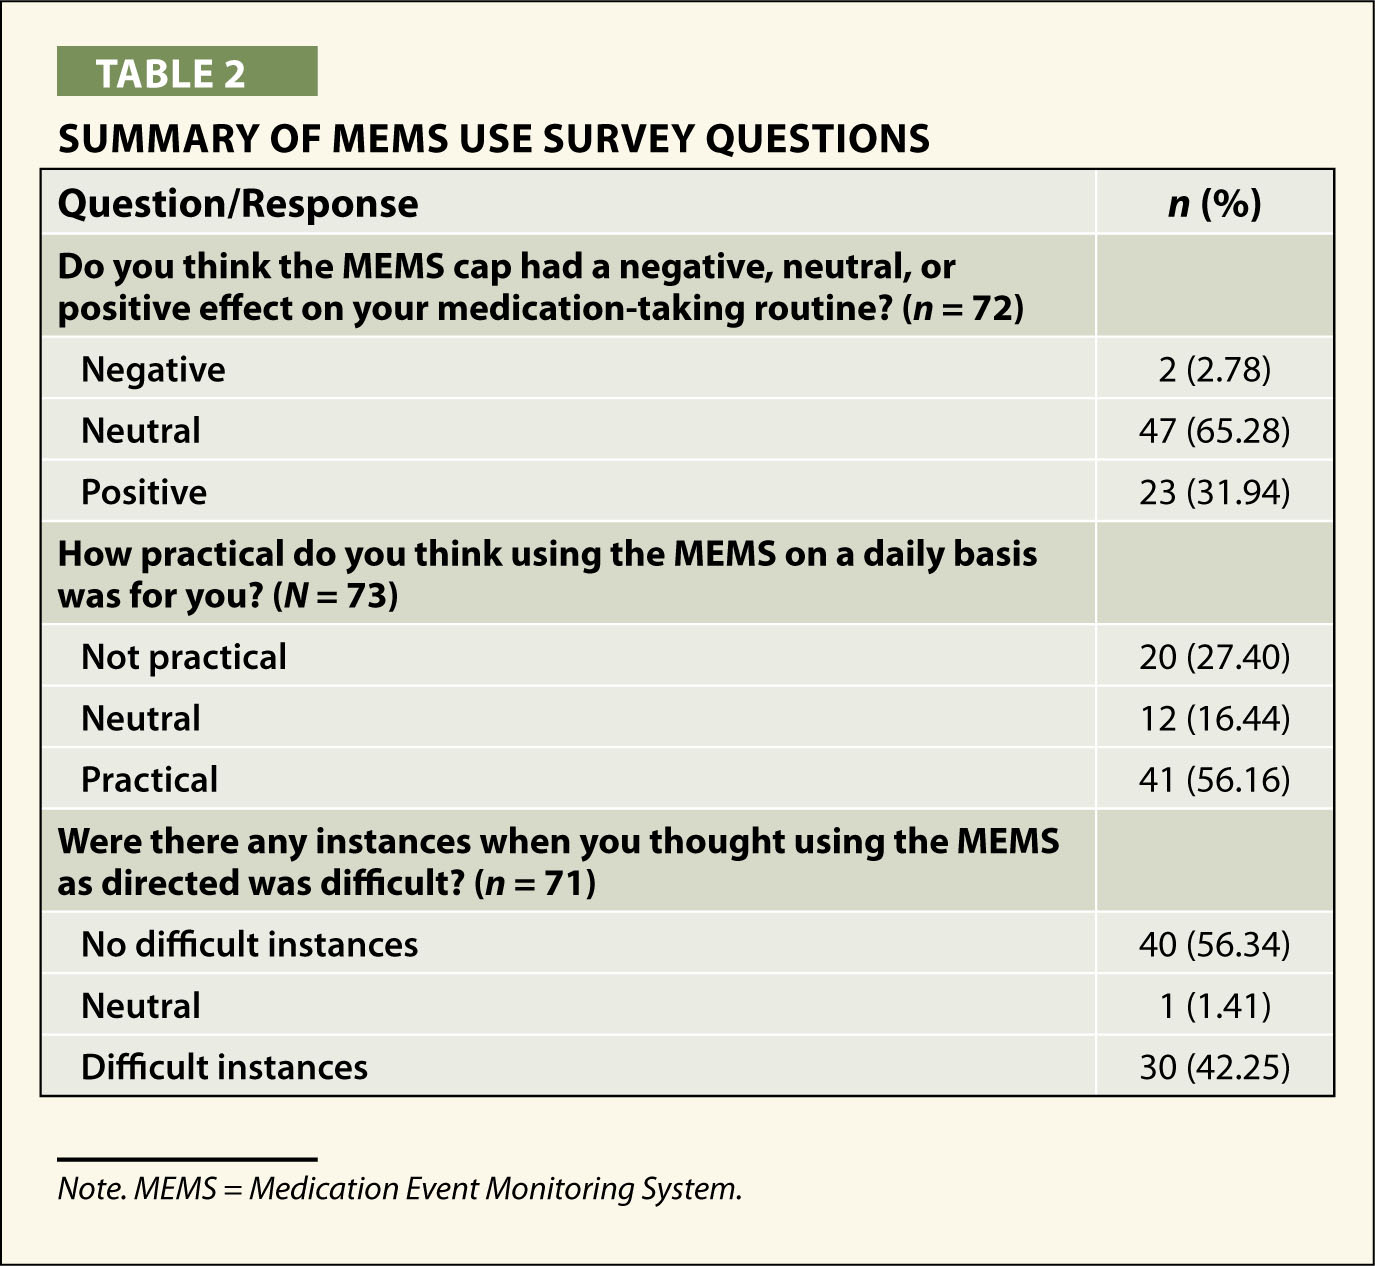 Summary of MEMS Use Survey Questions